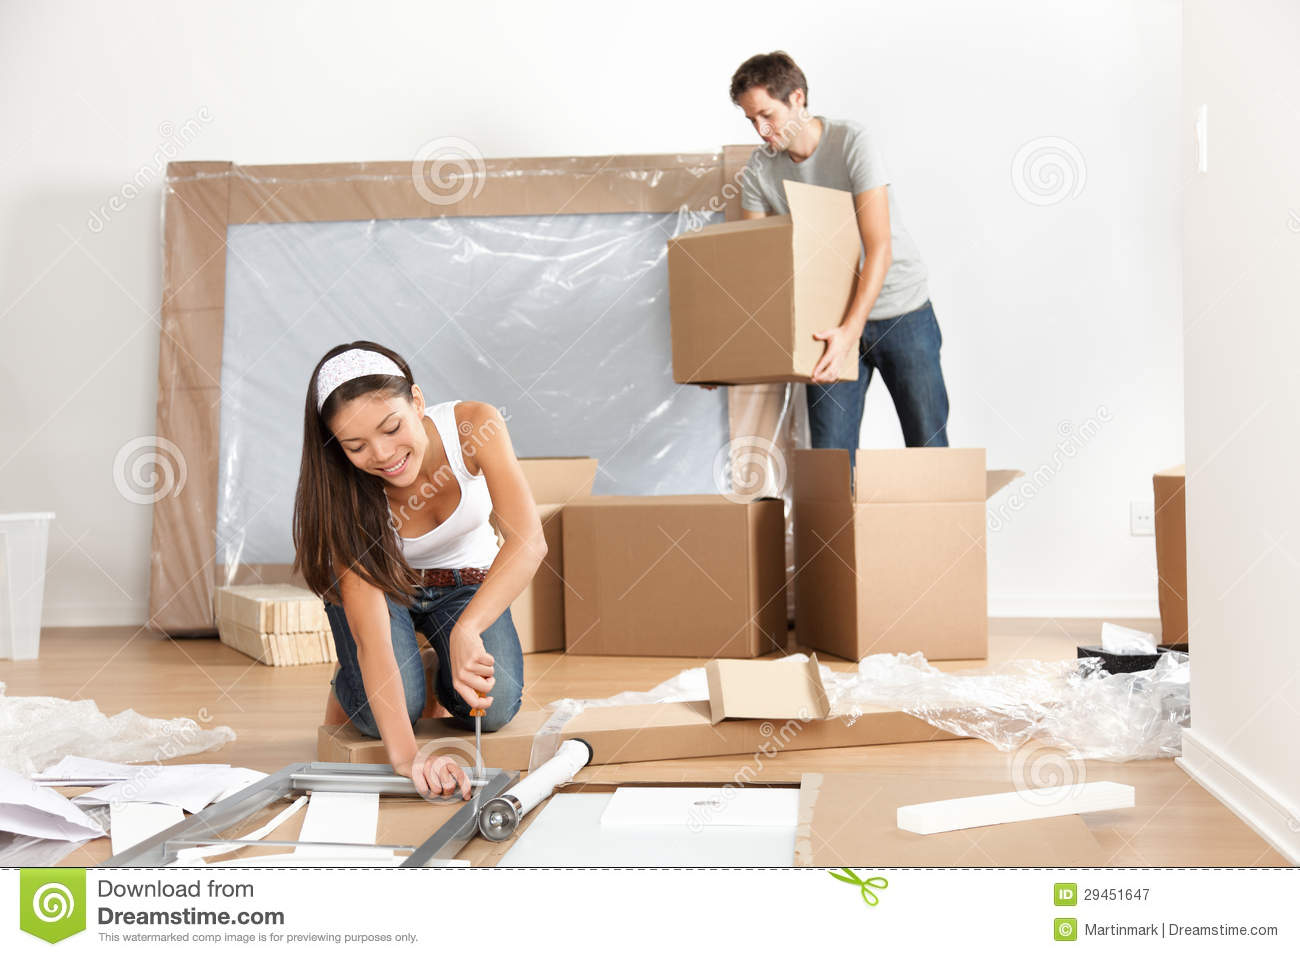 Couple moving in new home house stock image image 29451647 When is the best time to move house